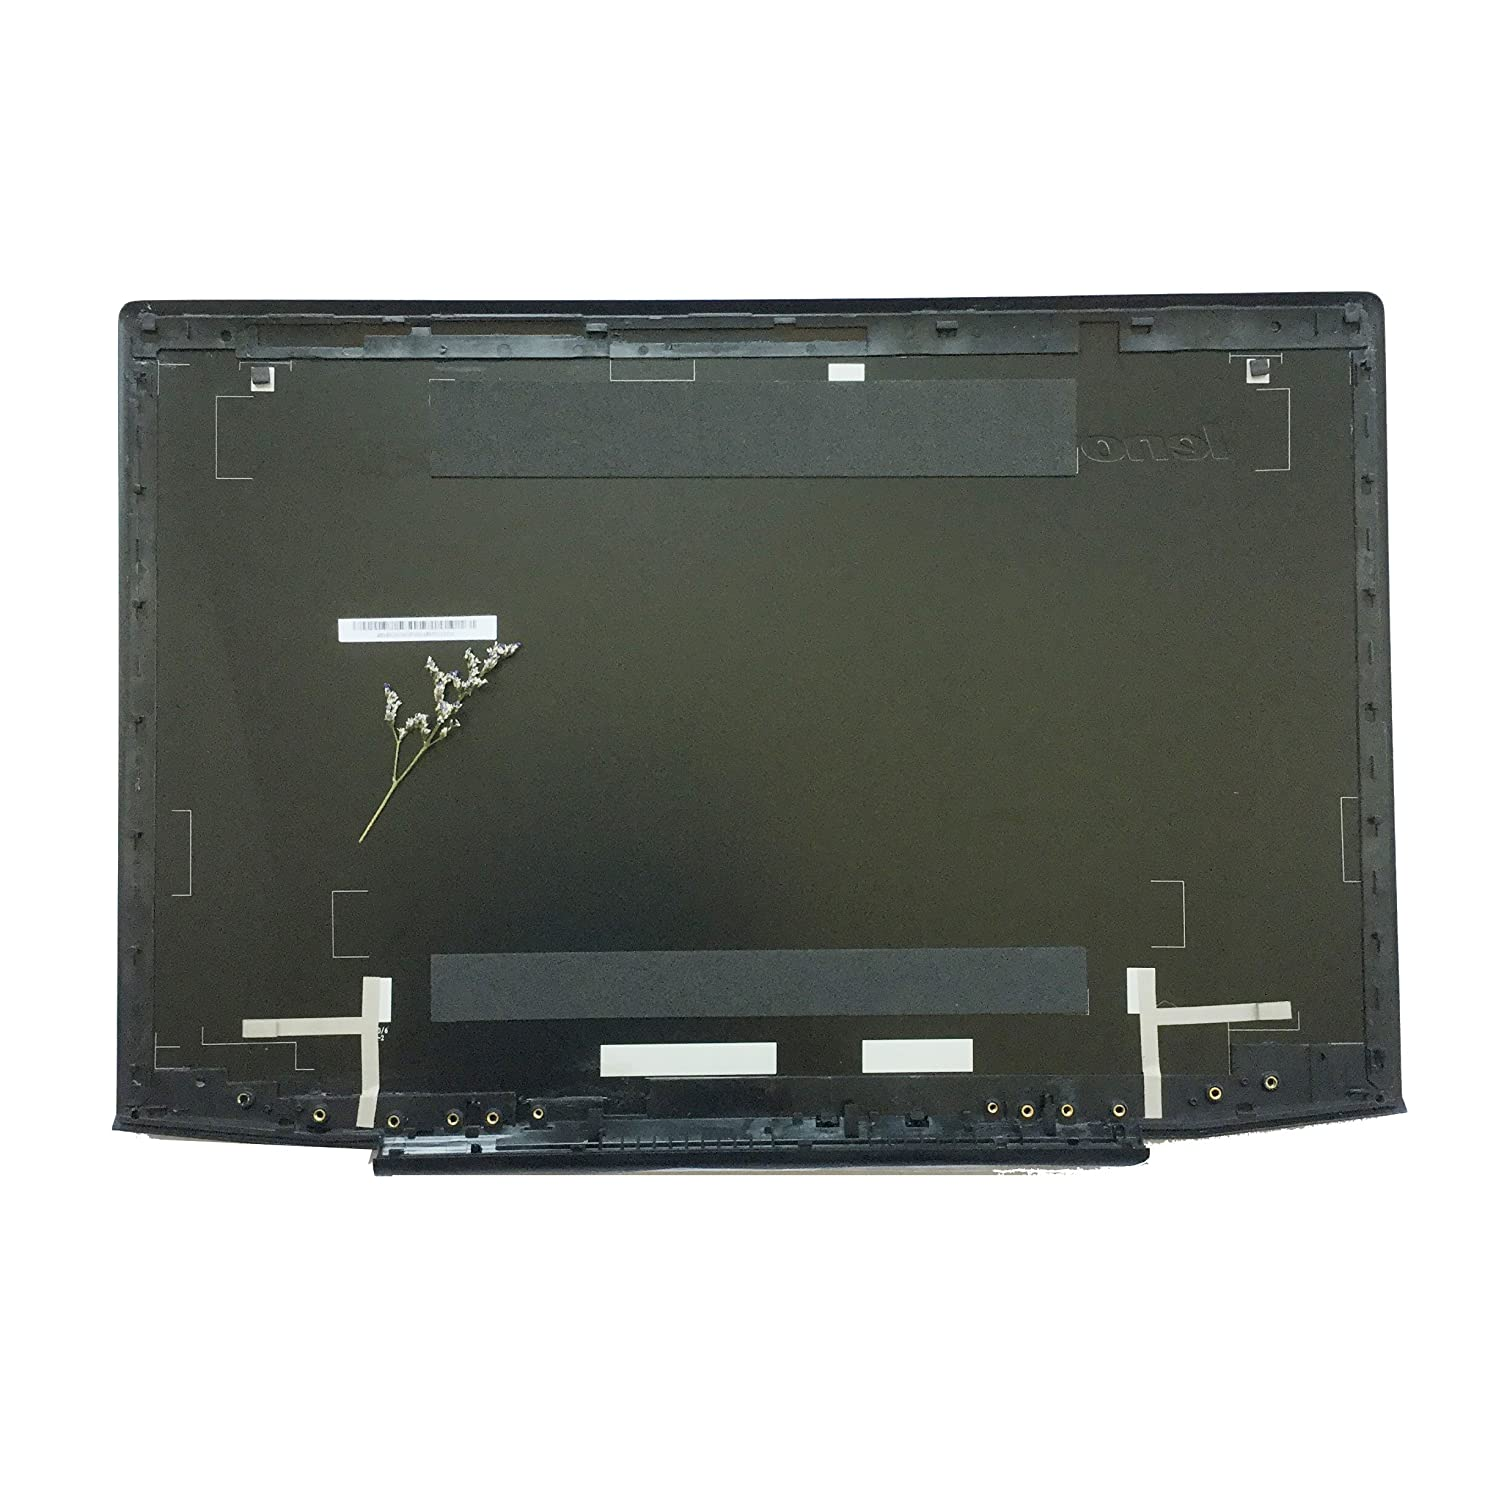 Sparepart01 Laptop LCD Rear Back Top Cover Case For Lenovo ideapad Y50-70 15.6